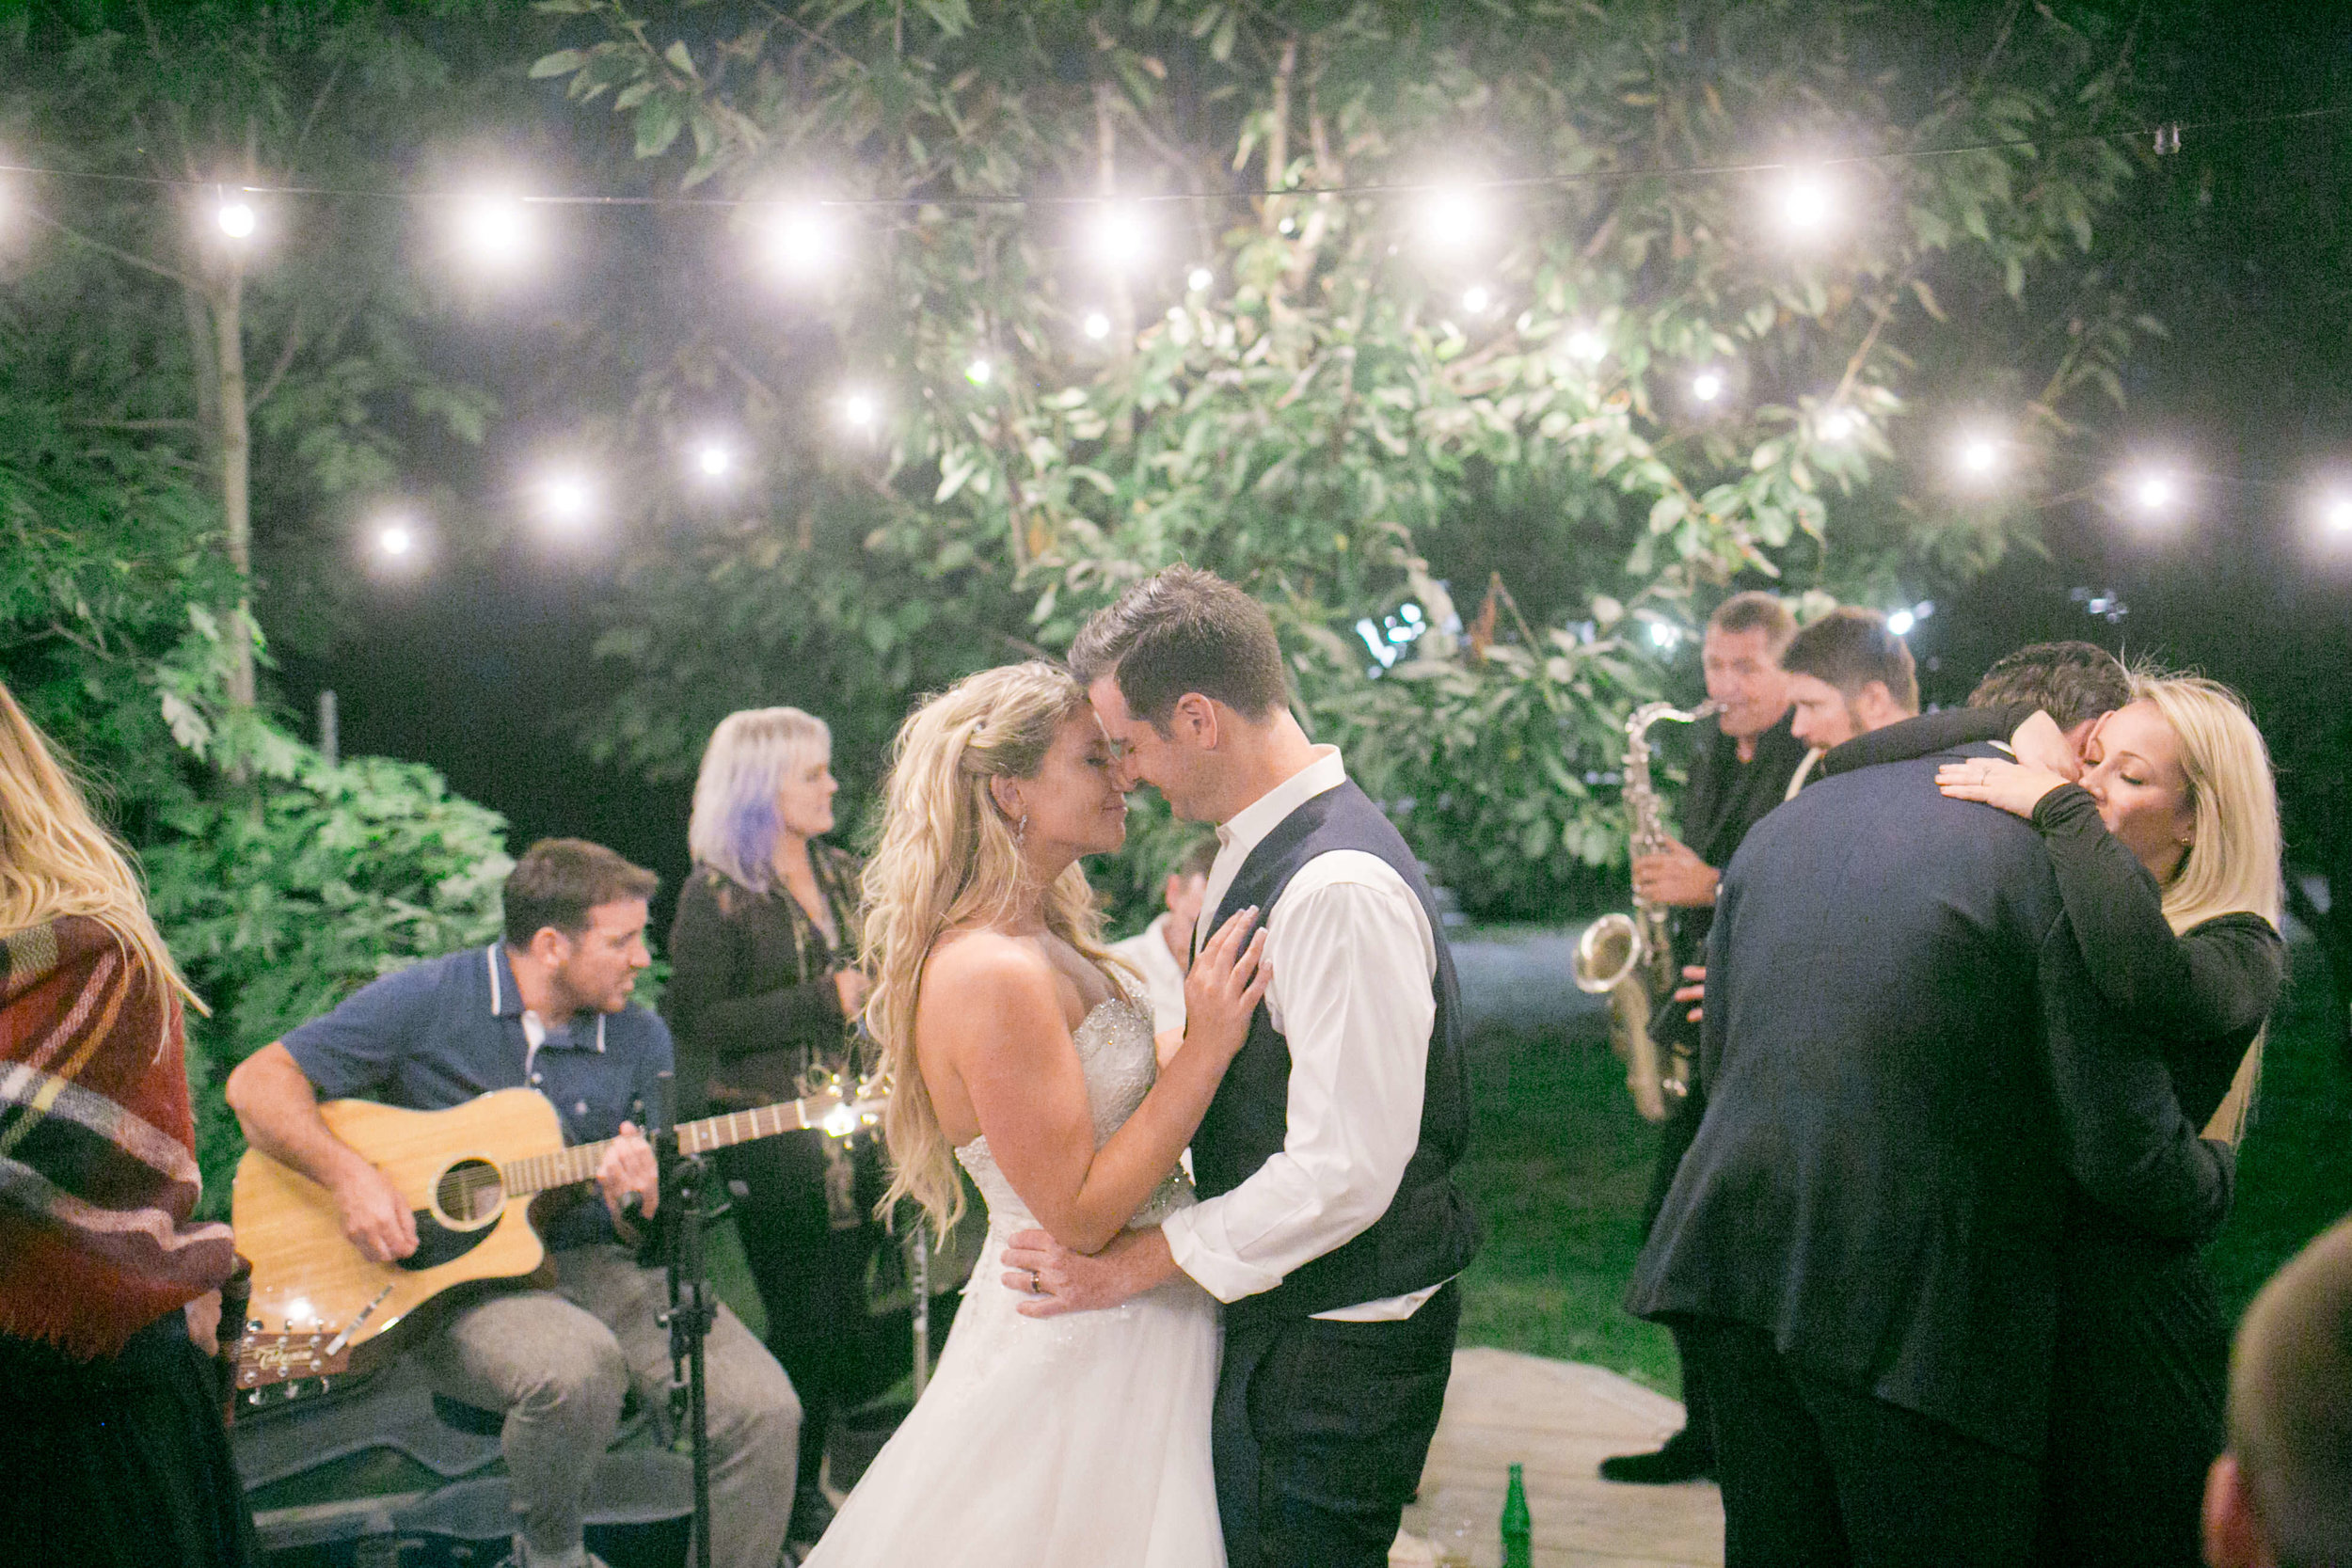 Ashley___Zac___Daniel_Ricci_Weddings___High_Res._Finals_698.jpg